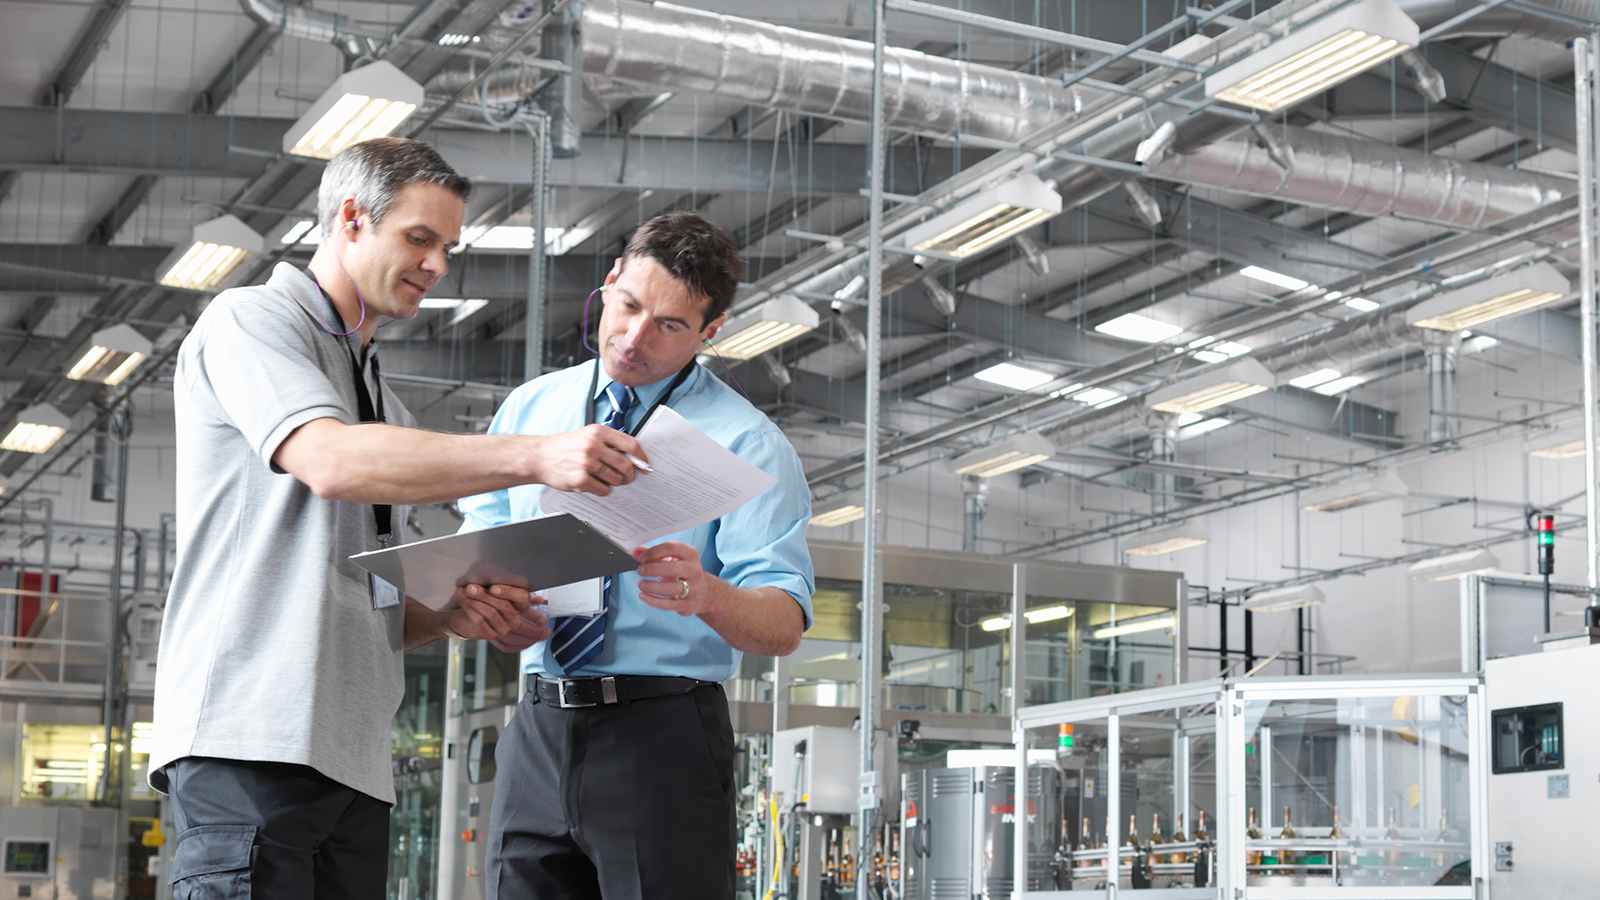 Two men discussing business in a factory